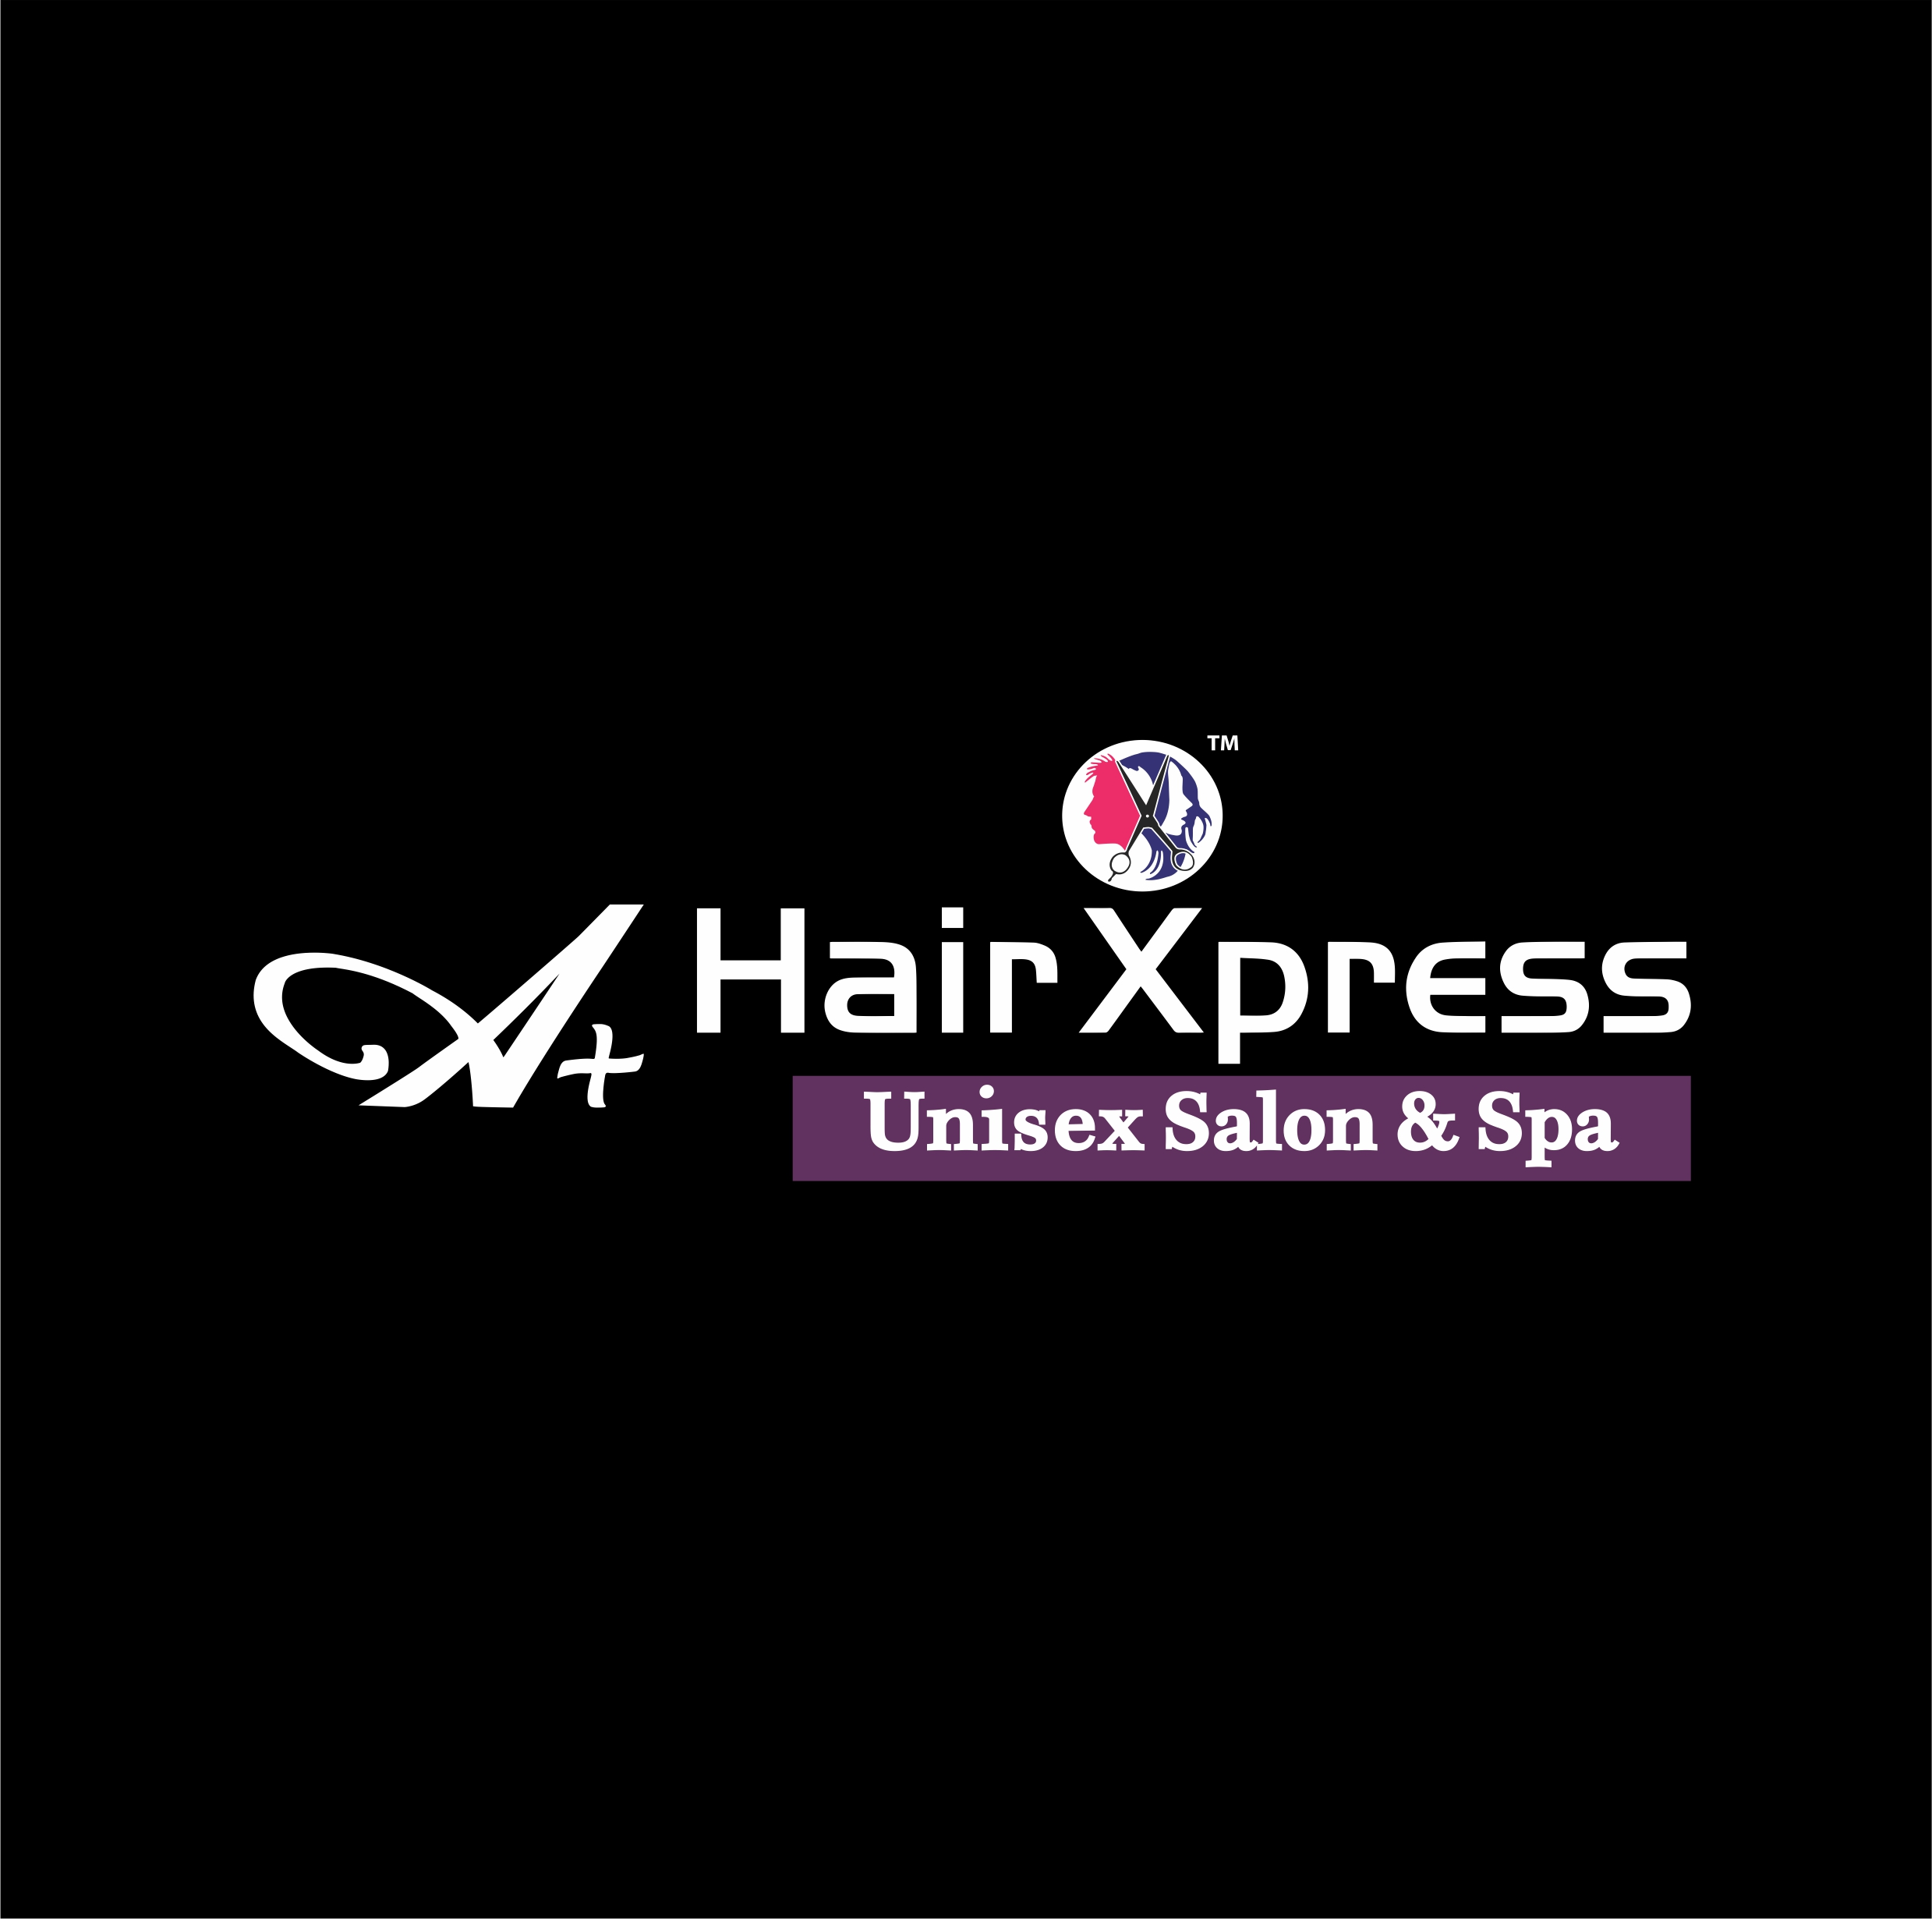 A PLUS HAIR XPRESS